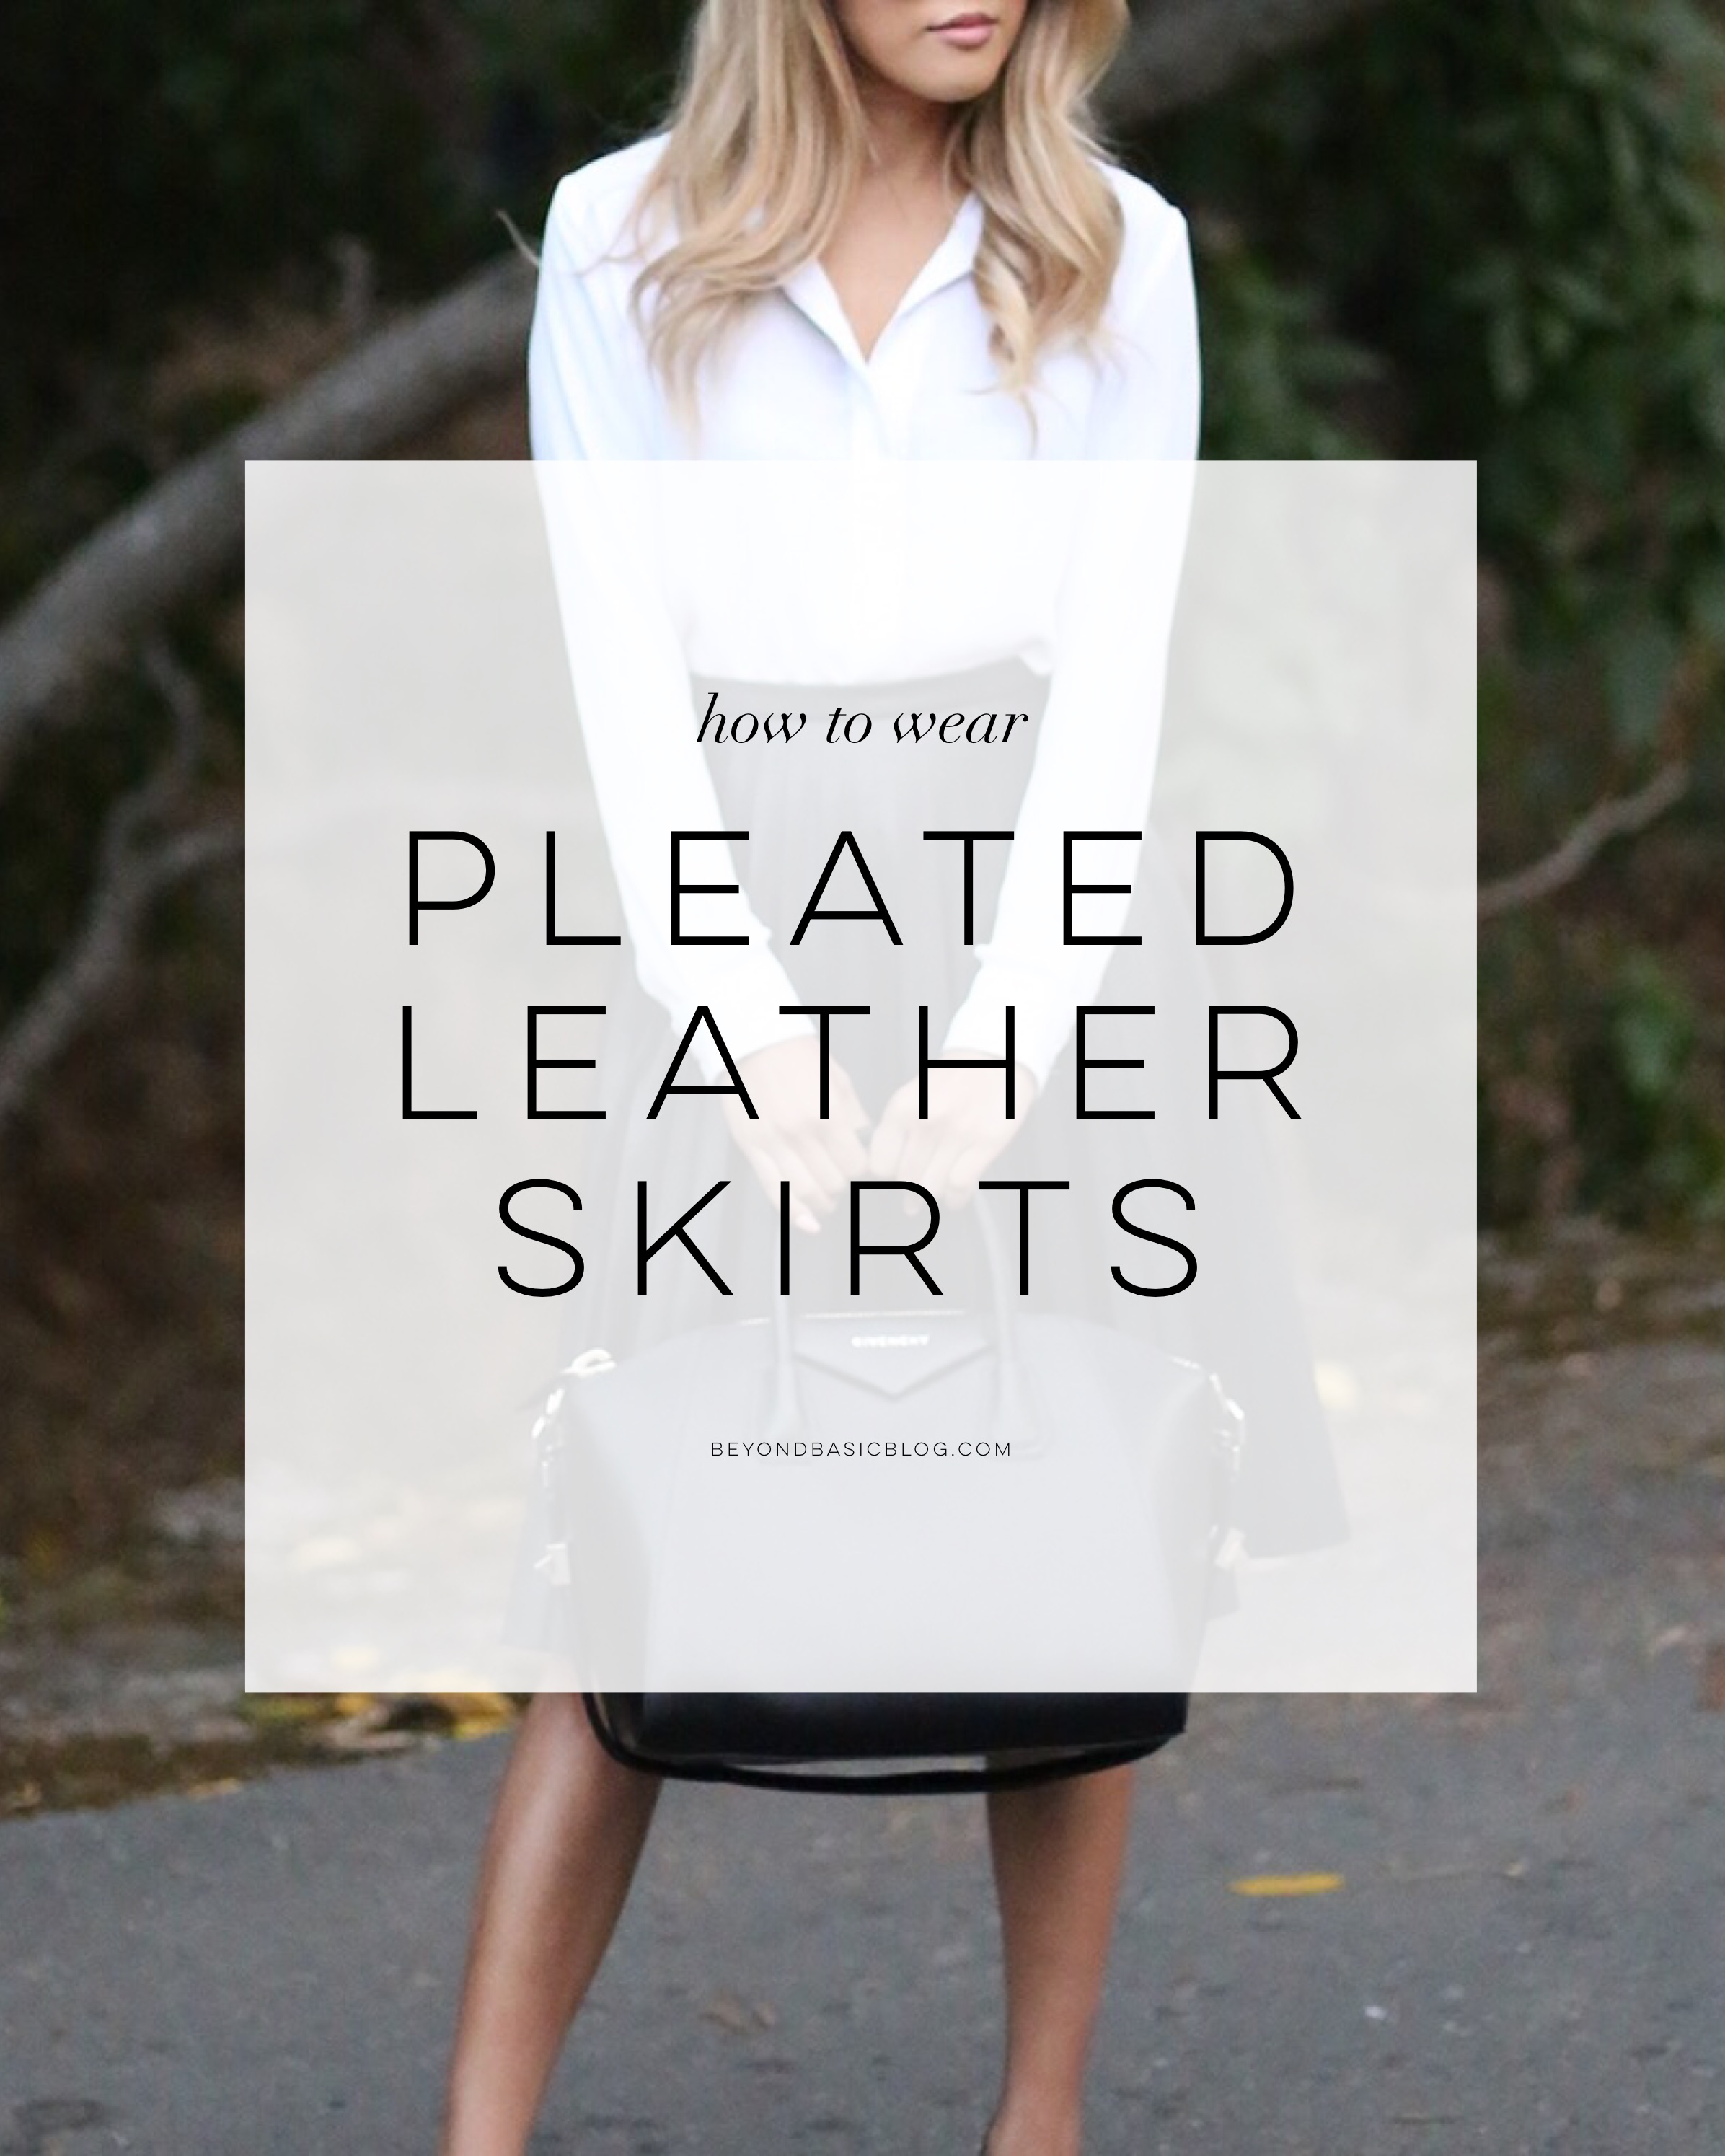 Beyond Basic Blog How To Wear Pleated Leather Skirts